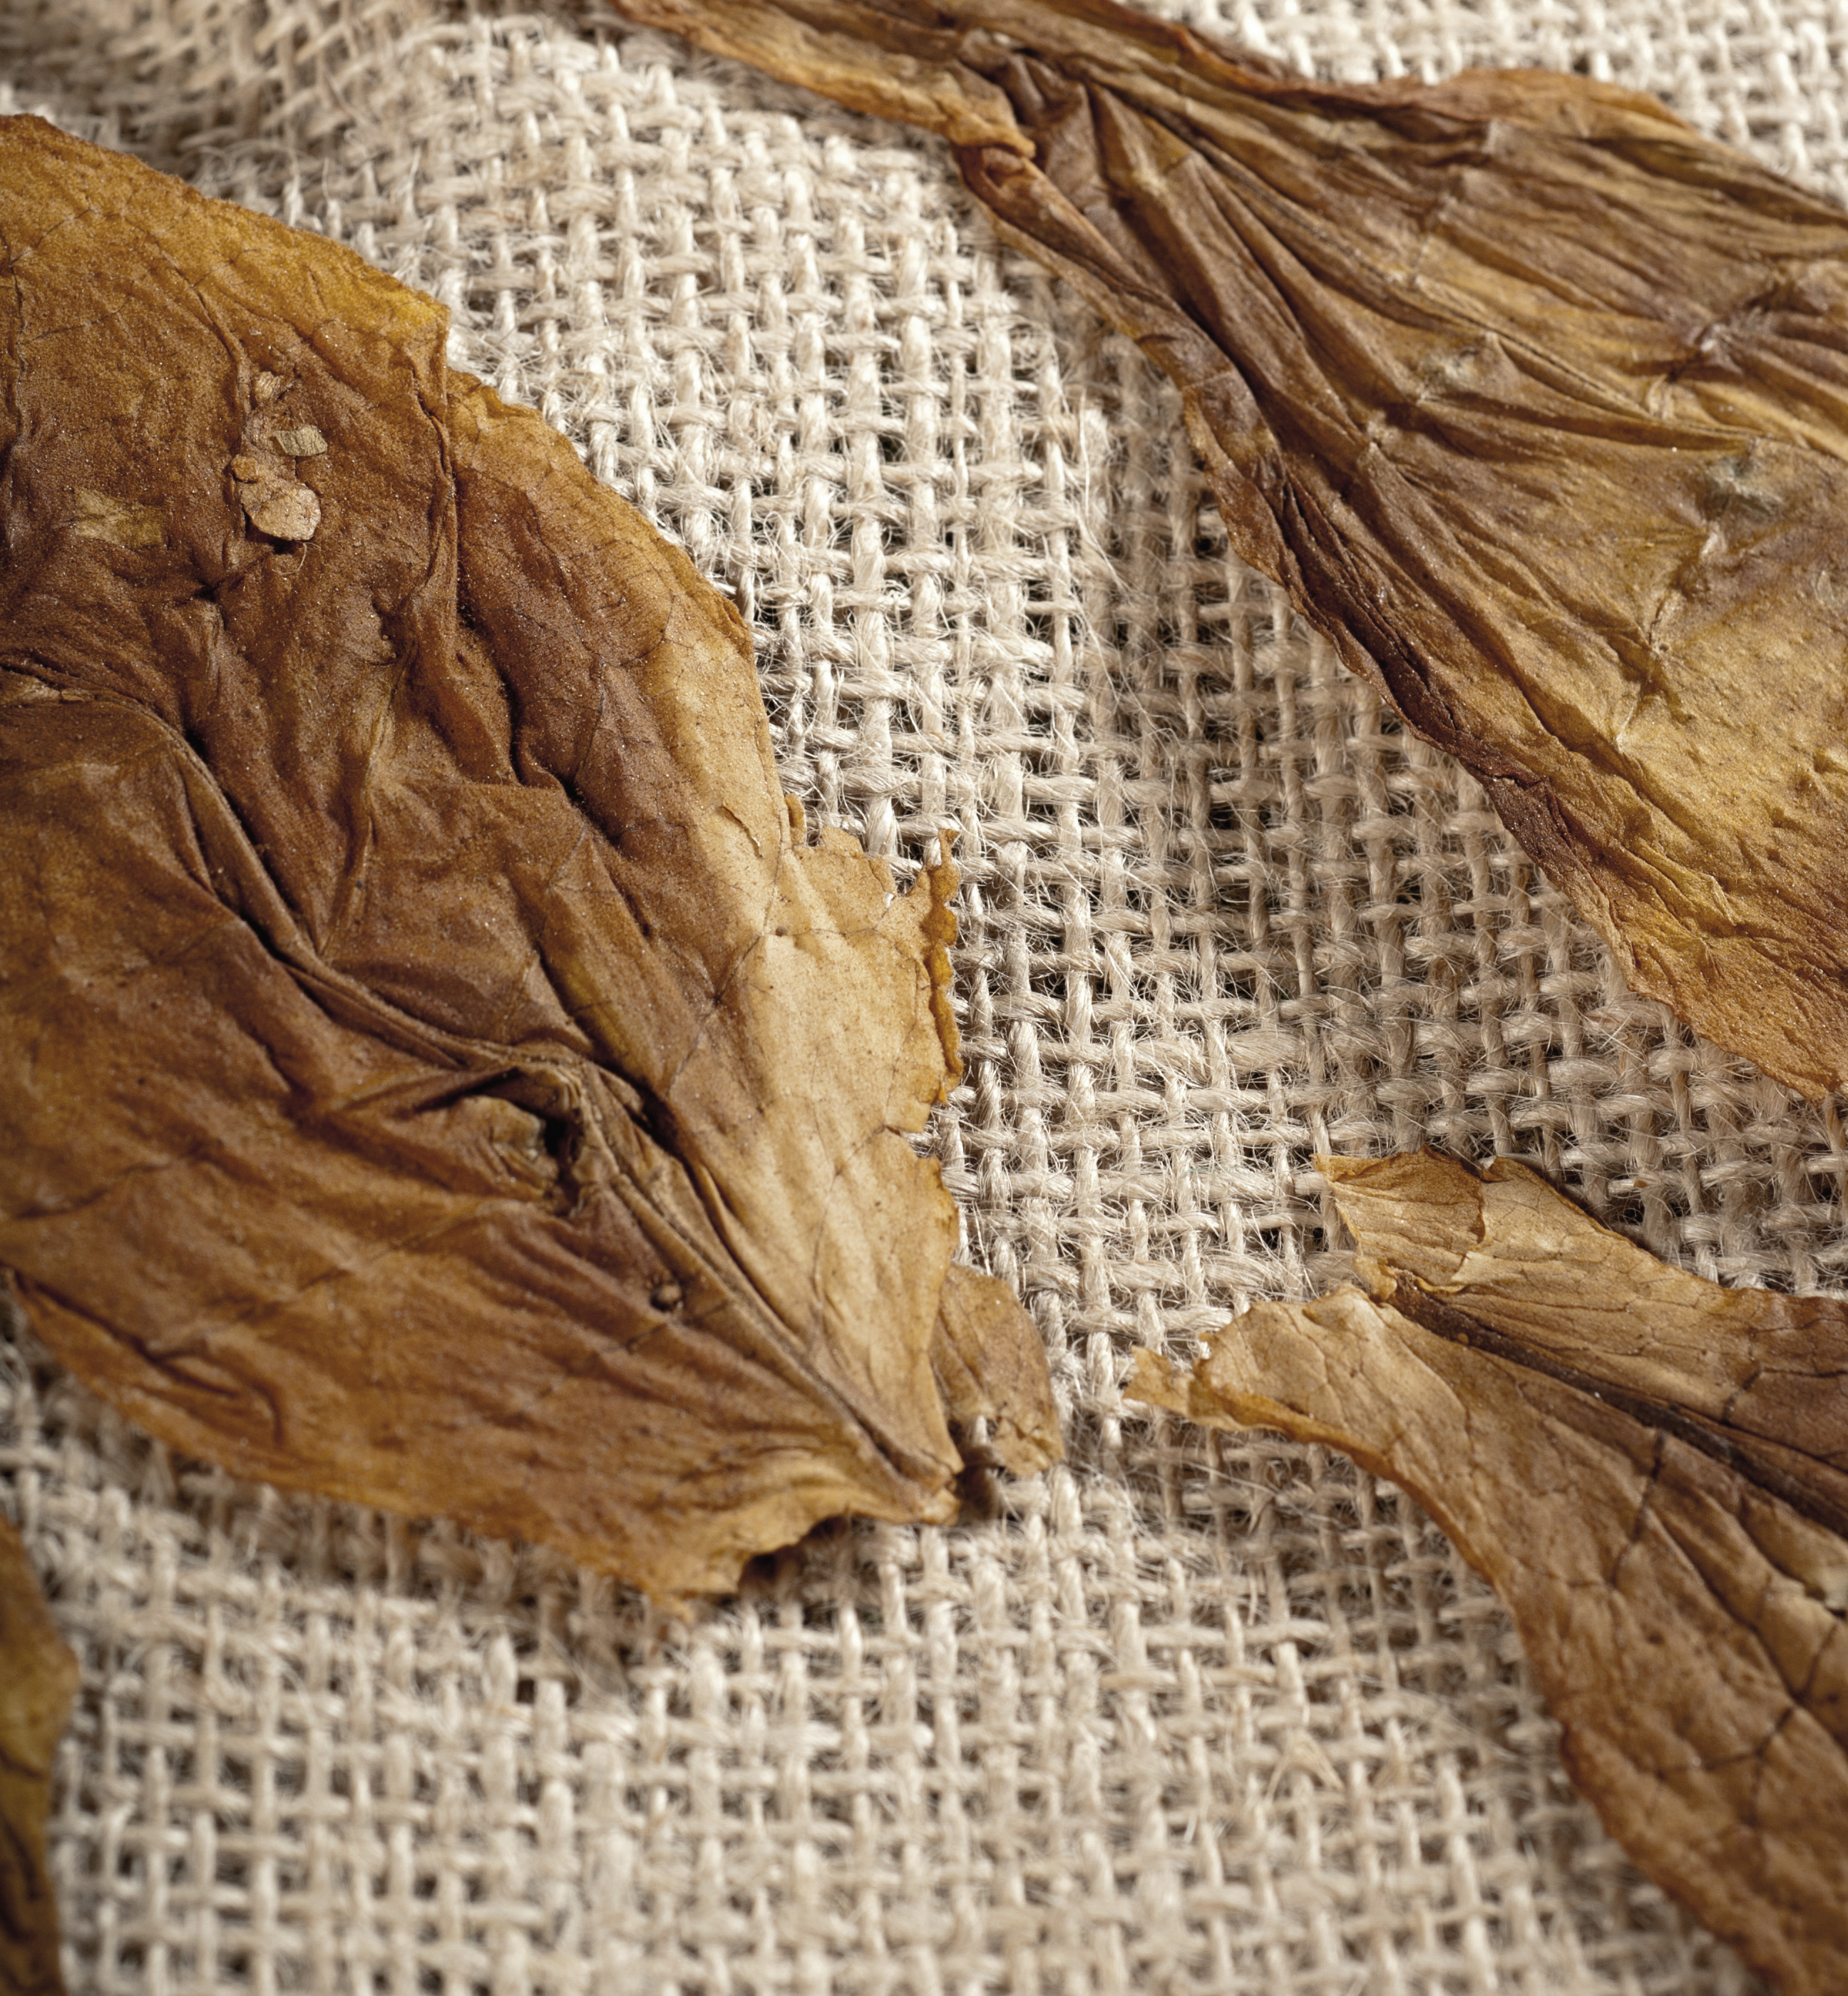 dried tobacco plants ready for processing